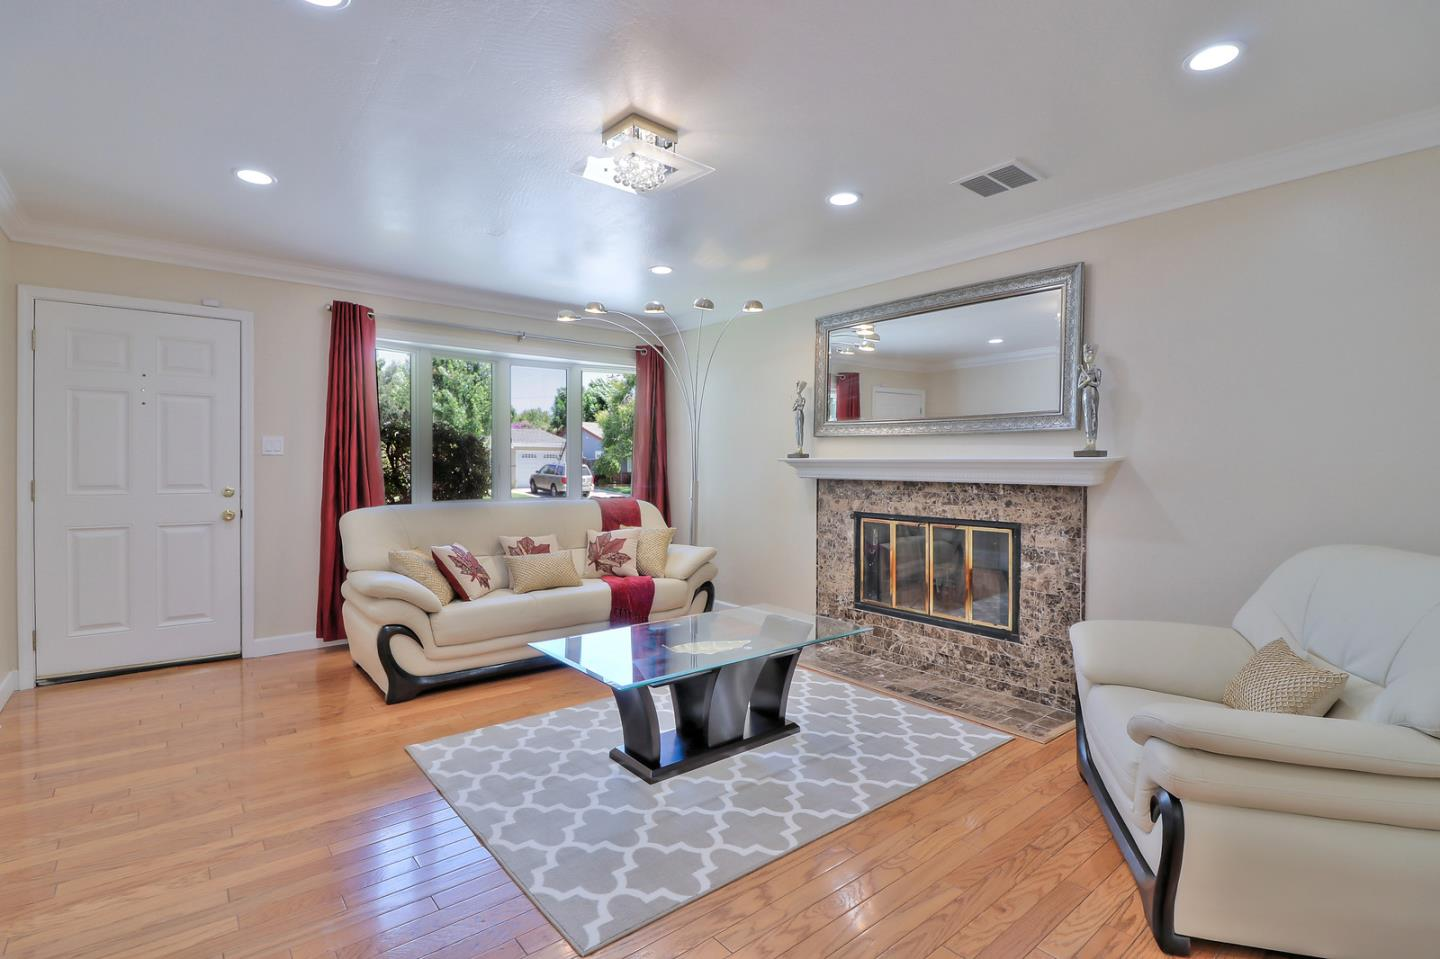 Additional photo for property listing at 4728 Parkwest Drive  San Jose, カリフォルニア 95130 アメリカ合衆国